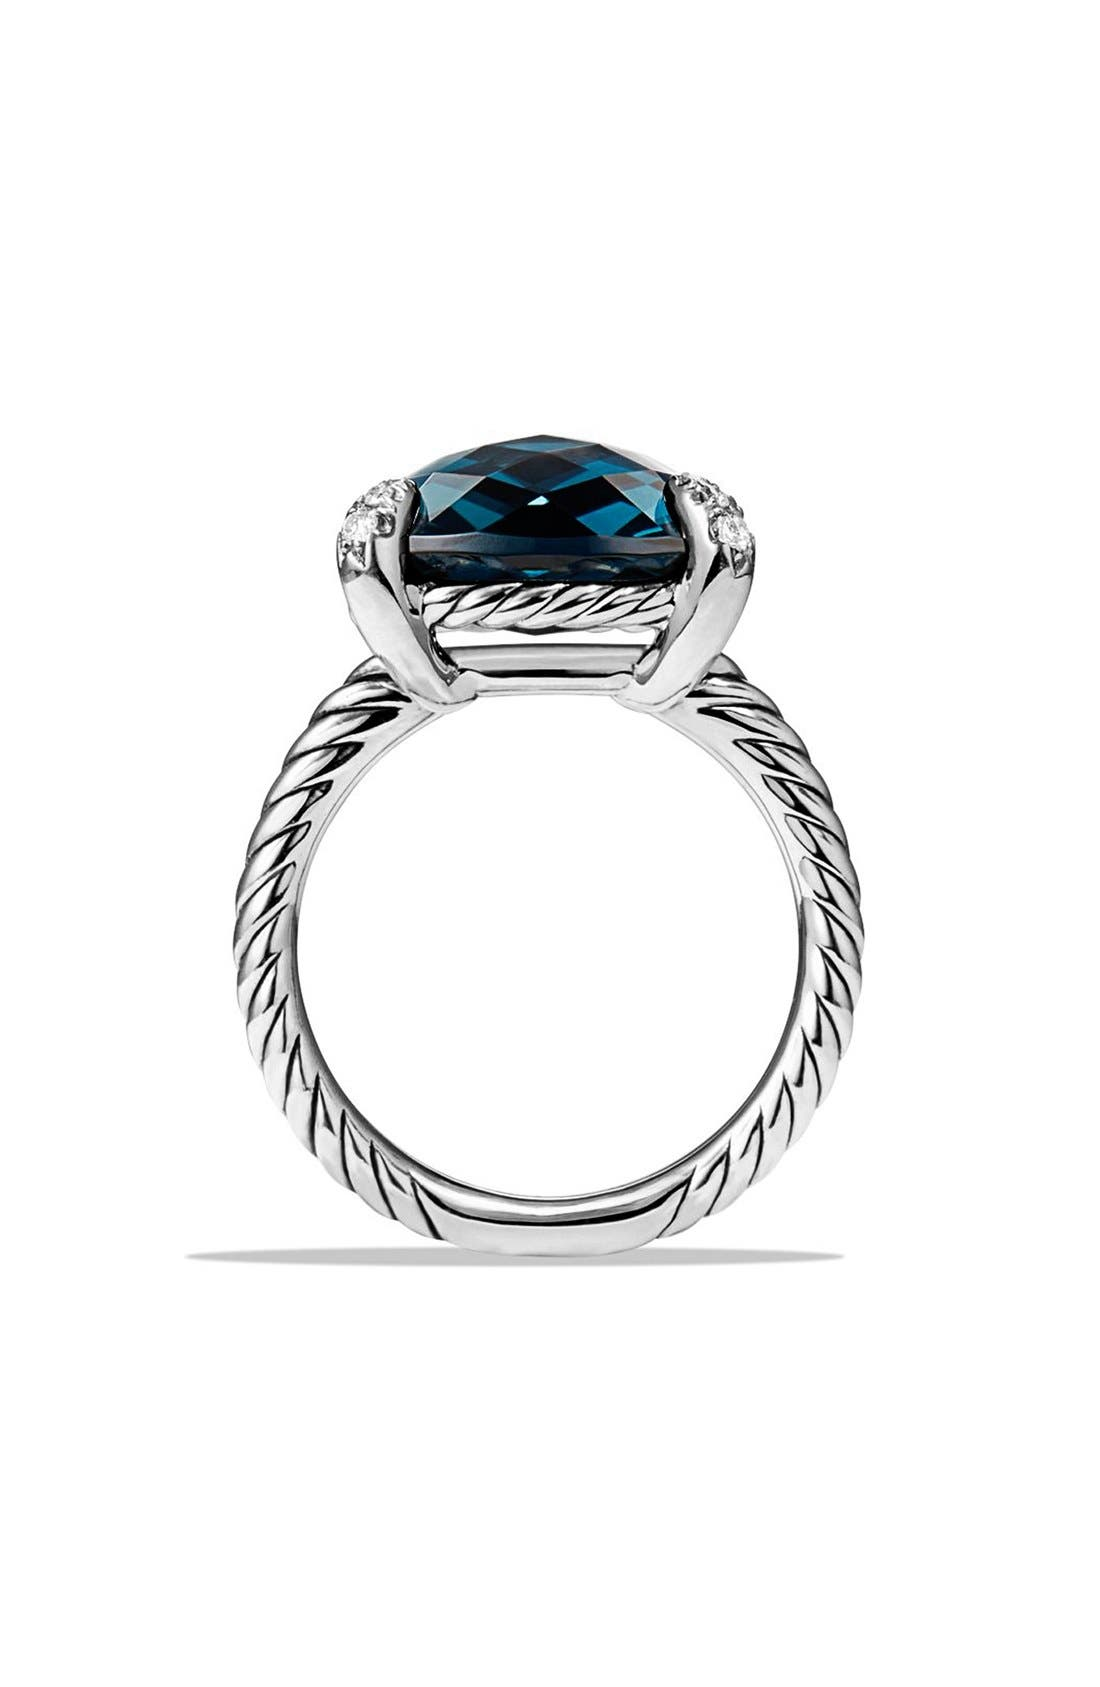 'Châtelaine' Ring with Semiprecious Stone and Diamonds,                             Alternate thumbnail 6, color,                             SILVER/ HAMPTON BLUE TOPAZ